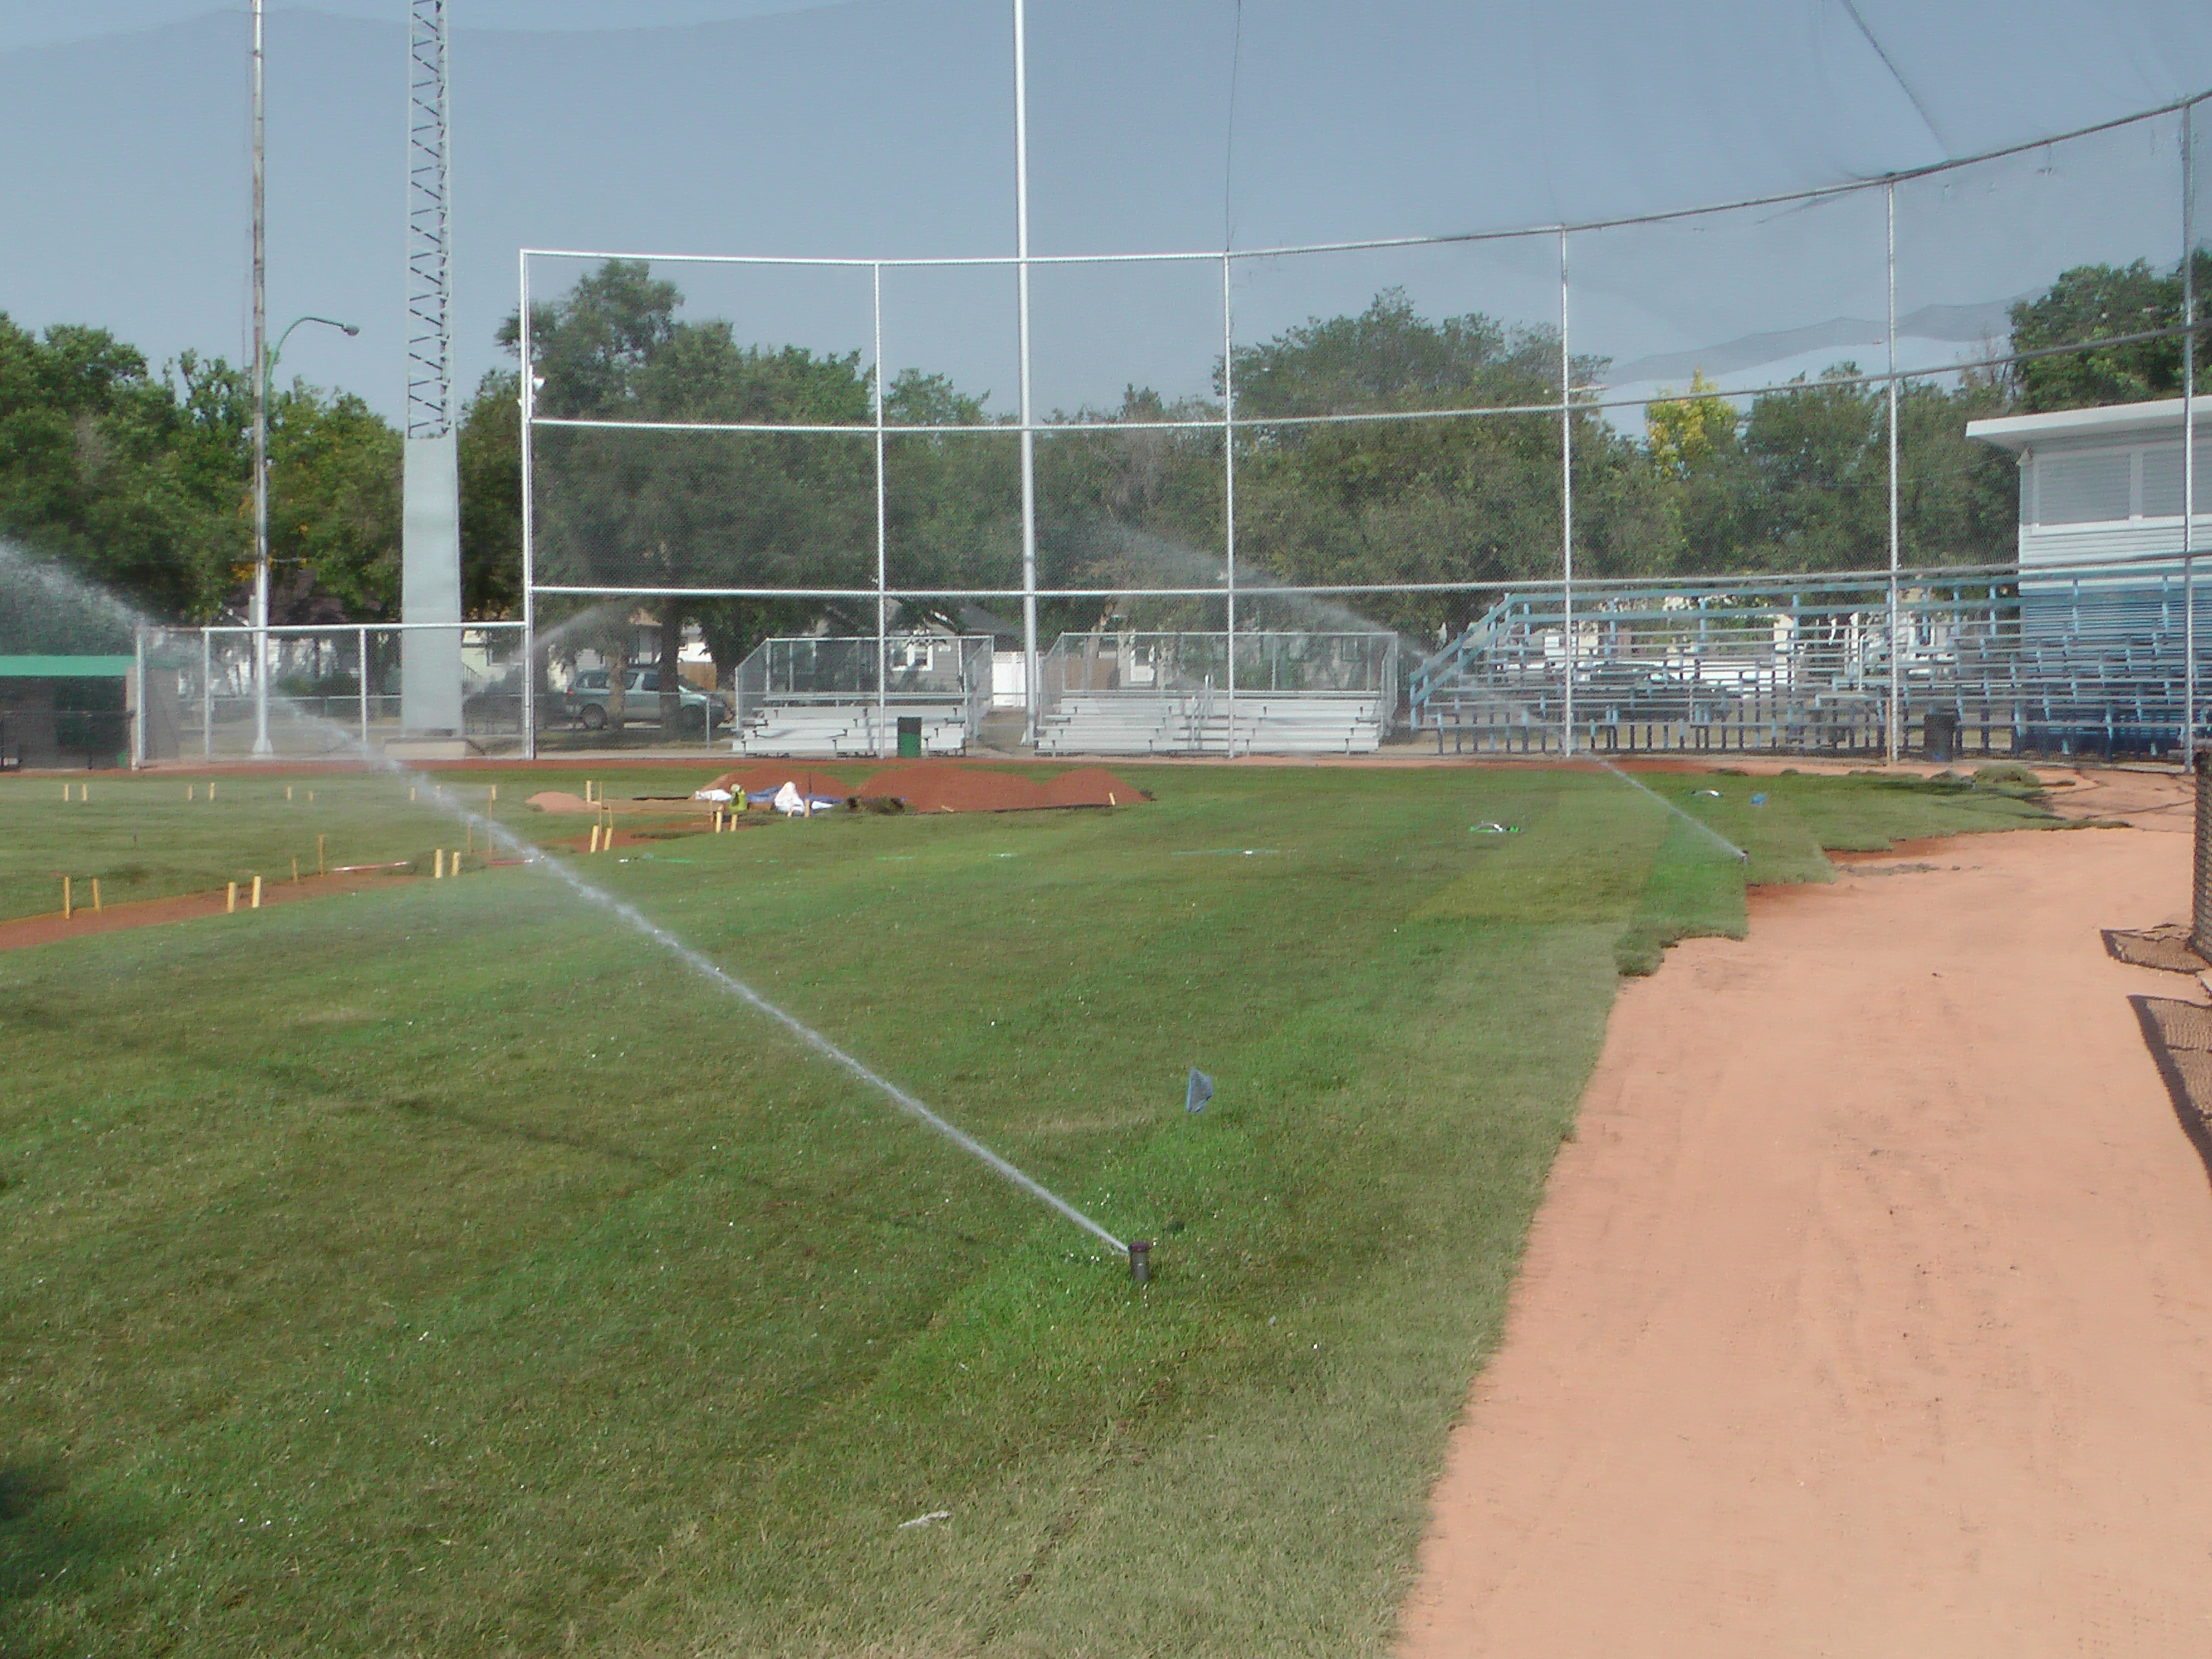 Sept 7 & 8 2018, Optimist Park Field Renovations, sod down being watered - Image 2